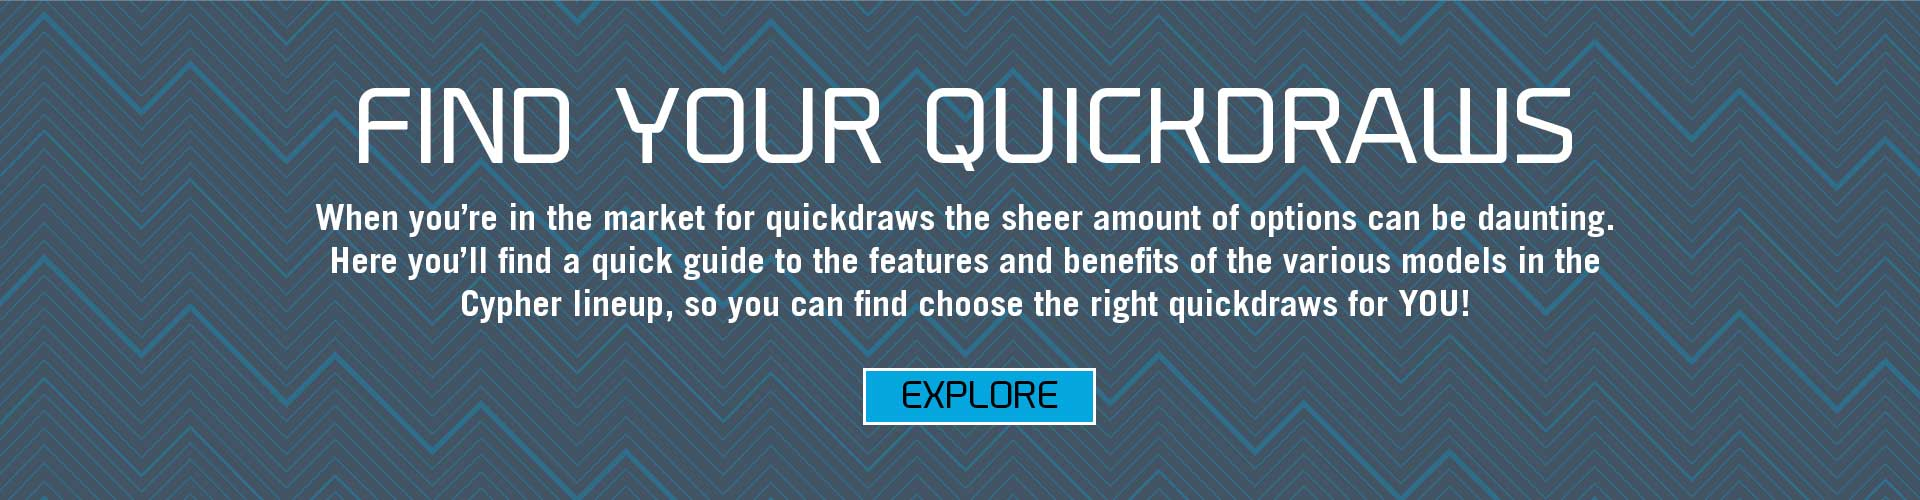 Find Your Quickraws- When you're in the market for quickdraws, the sheer amount of options can be daunting. Here you'll find a quick guide to the features and benefits of the various models in the Cypher lineup so that you can find the right quickdraws.